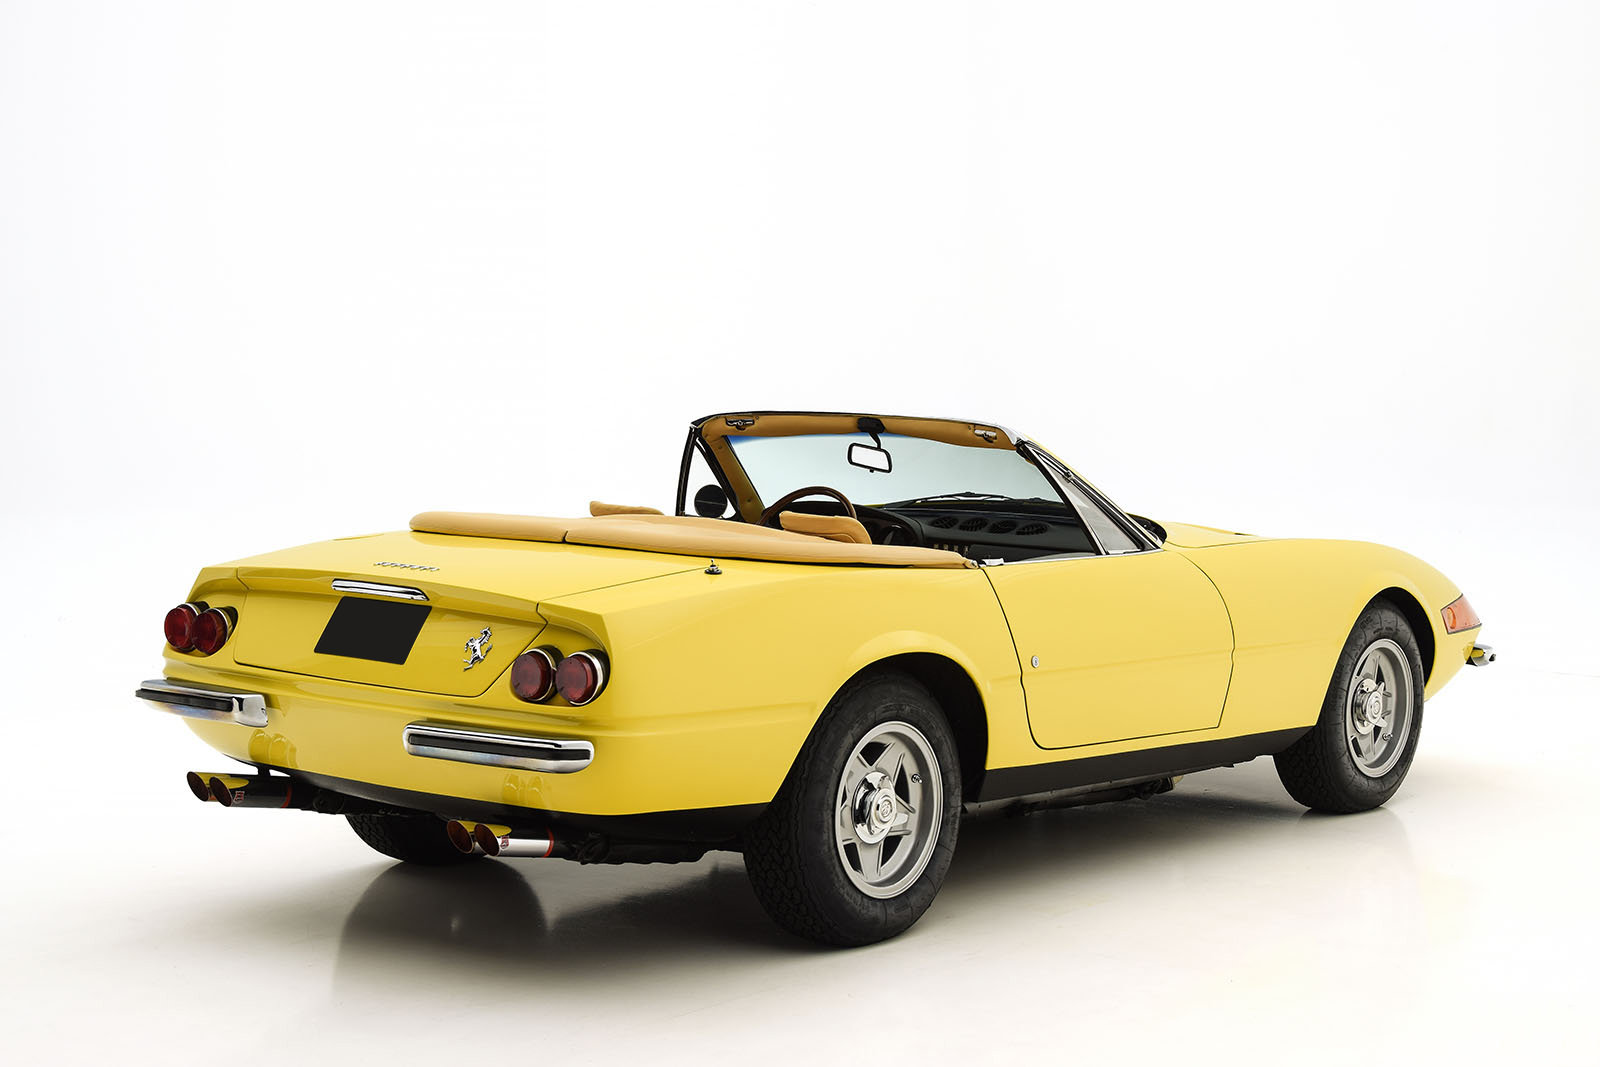 Ferrari 365 GTB/4 Daytona Spider-Conversion - 1971 For Sale (picture 2 of 6)